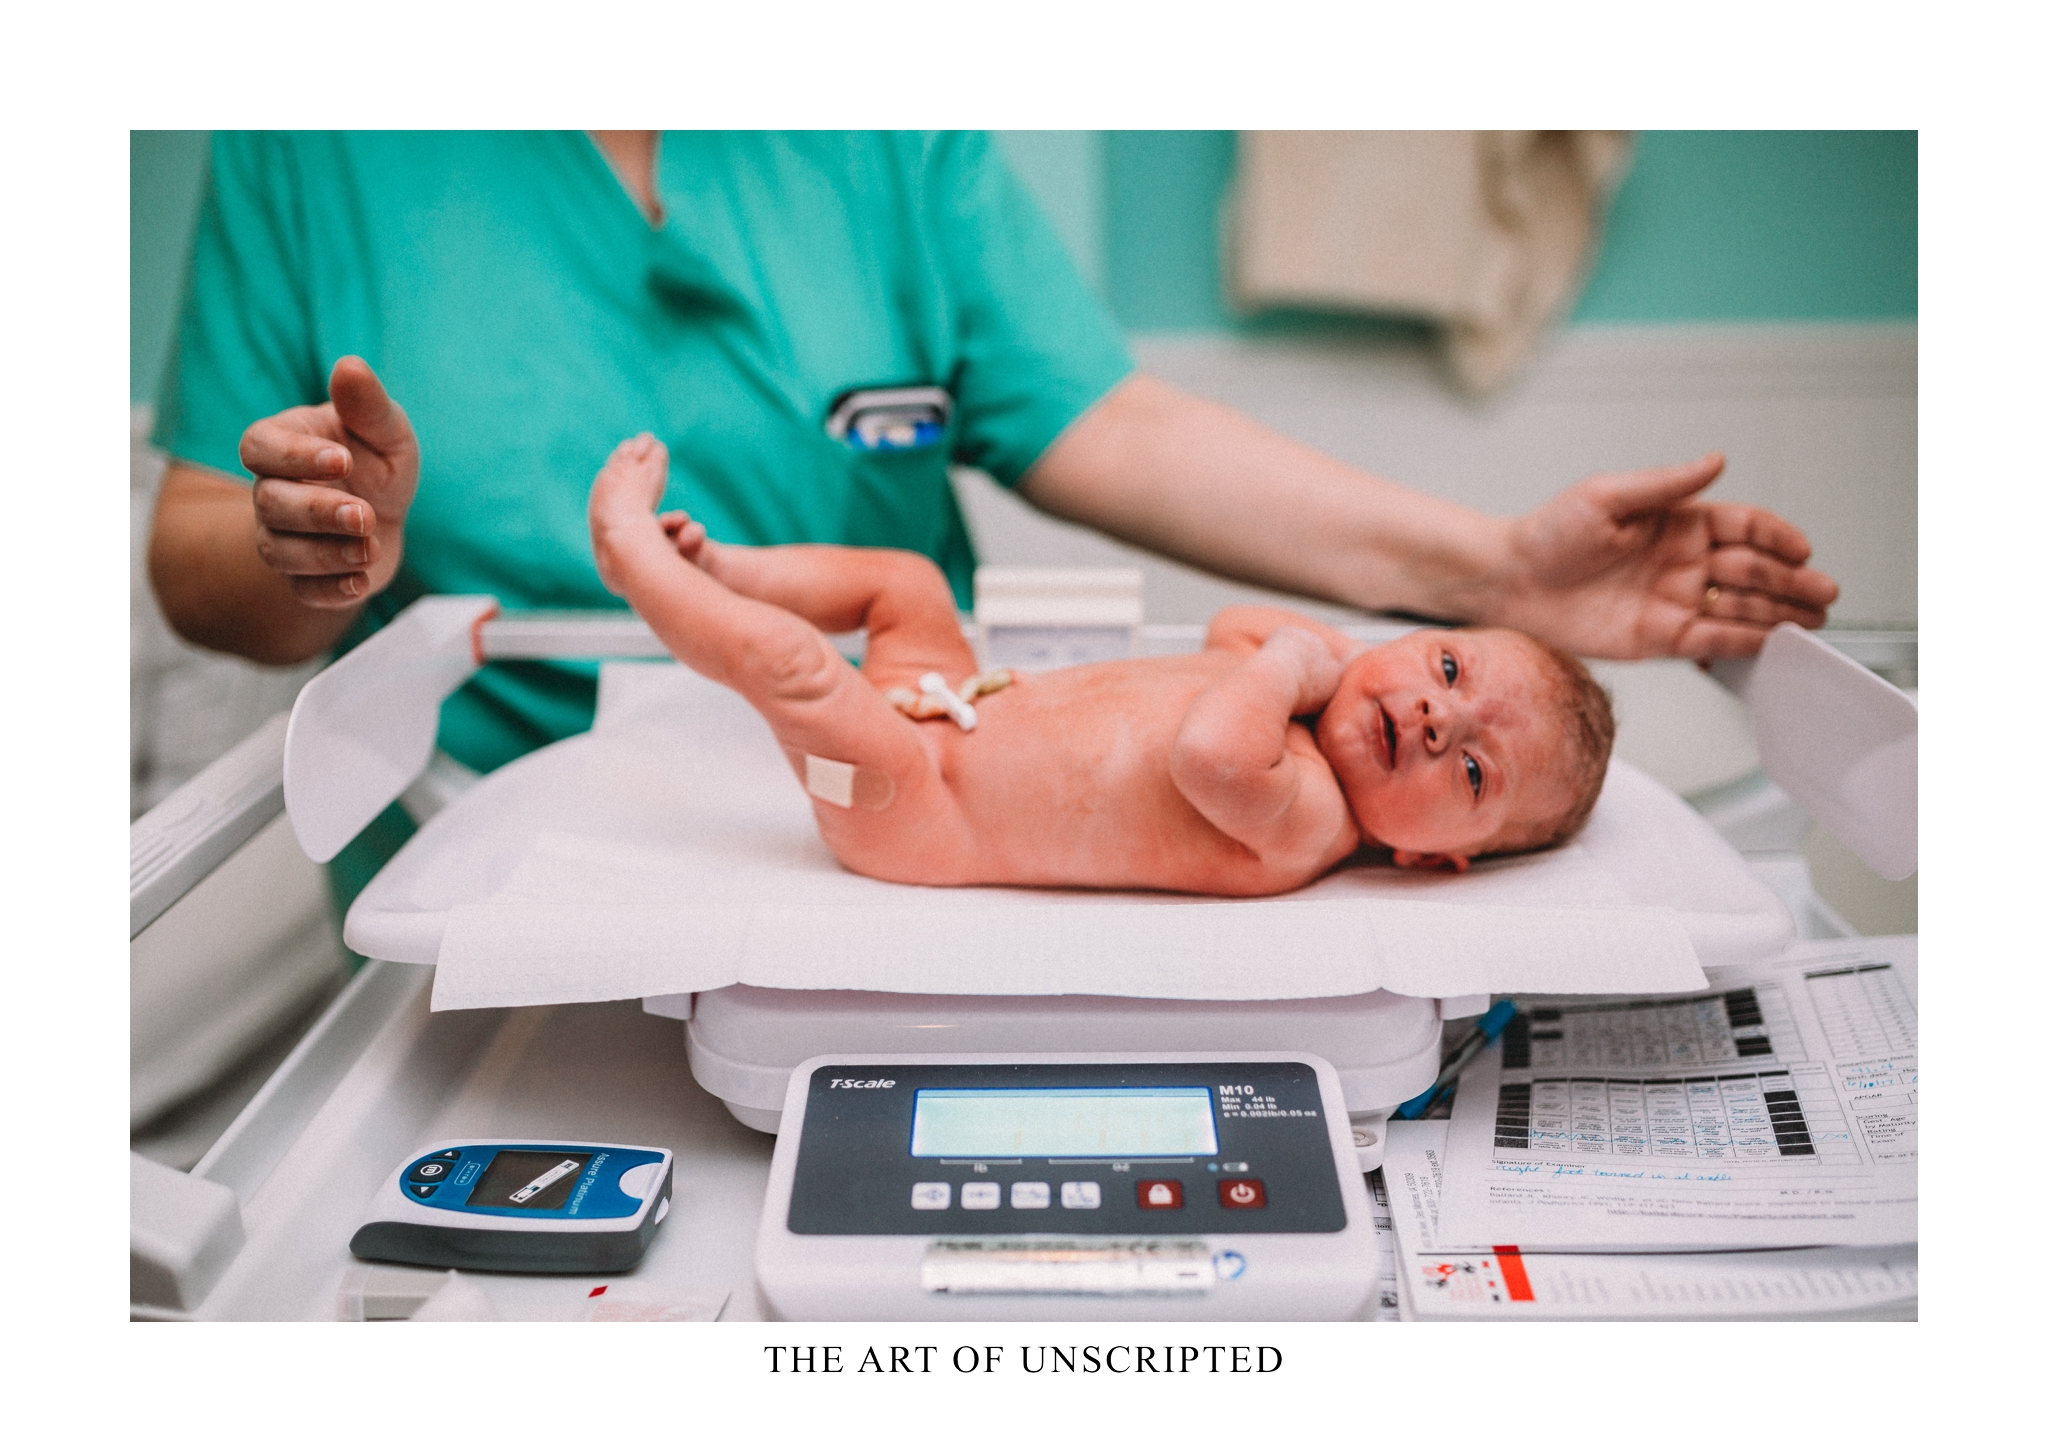 2017-06-11_023031__THE ART OF UNSCRIPTED_SPRINGFIELD MO_BIRTH PHOTOGRAPHER_ DOCUMENTARY_STORYTELLING_417_PHOTOGRAPHER